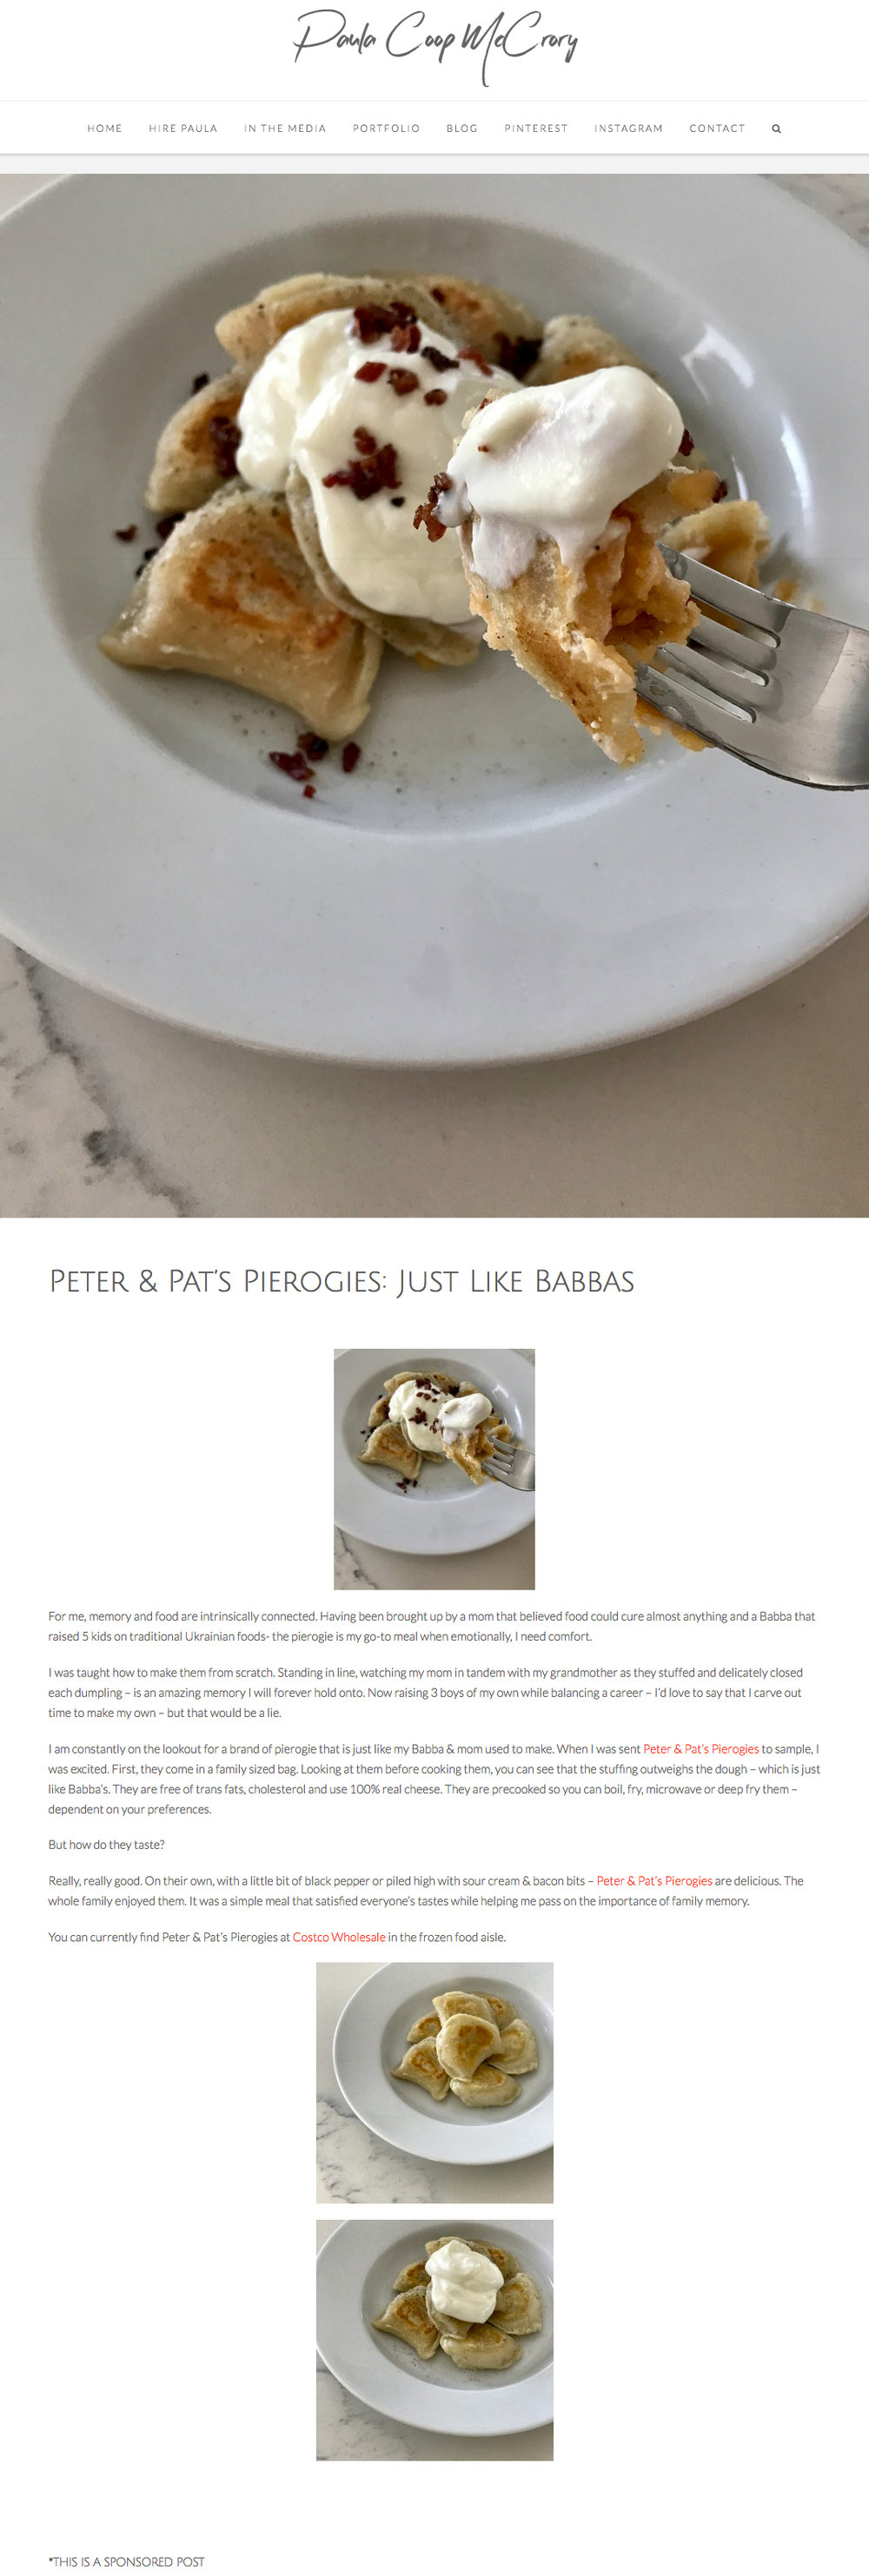 Peter & Pat's Pierogies featured in Paula Coop McCrory Blog